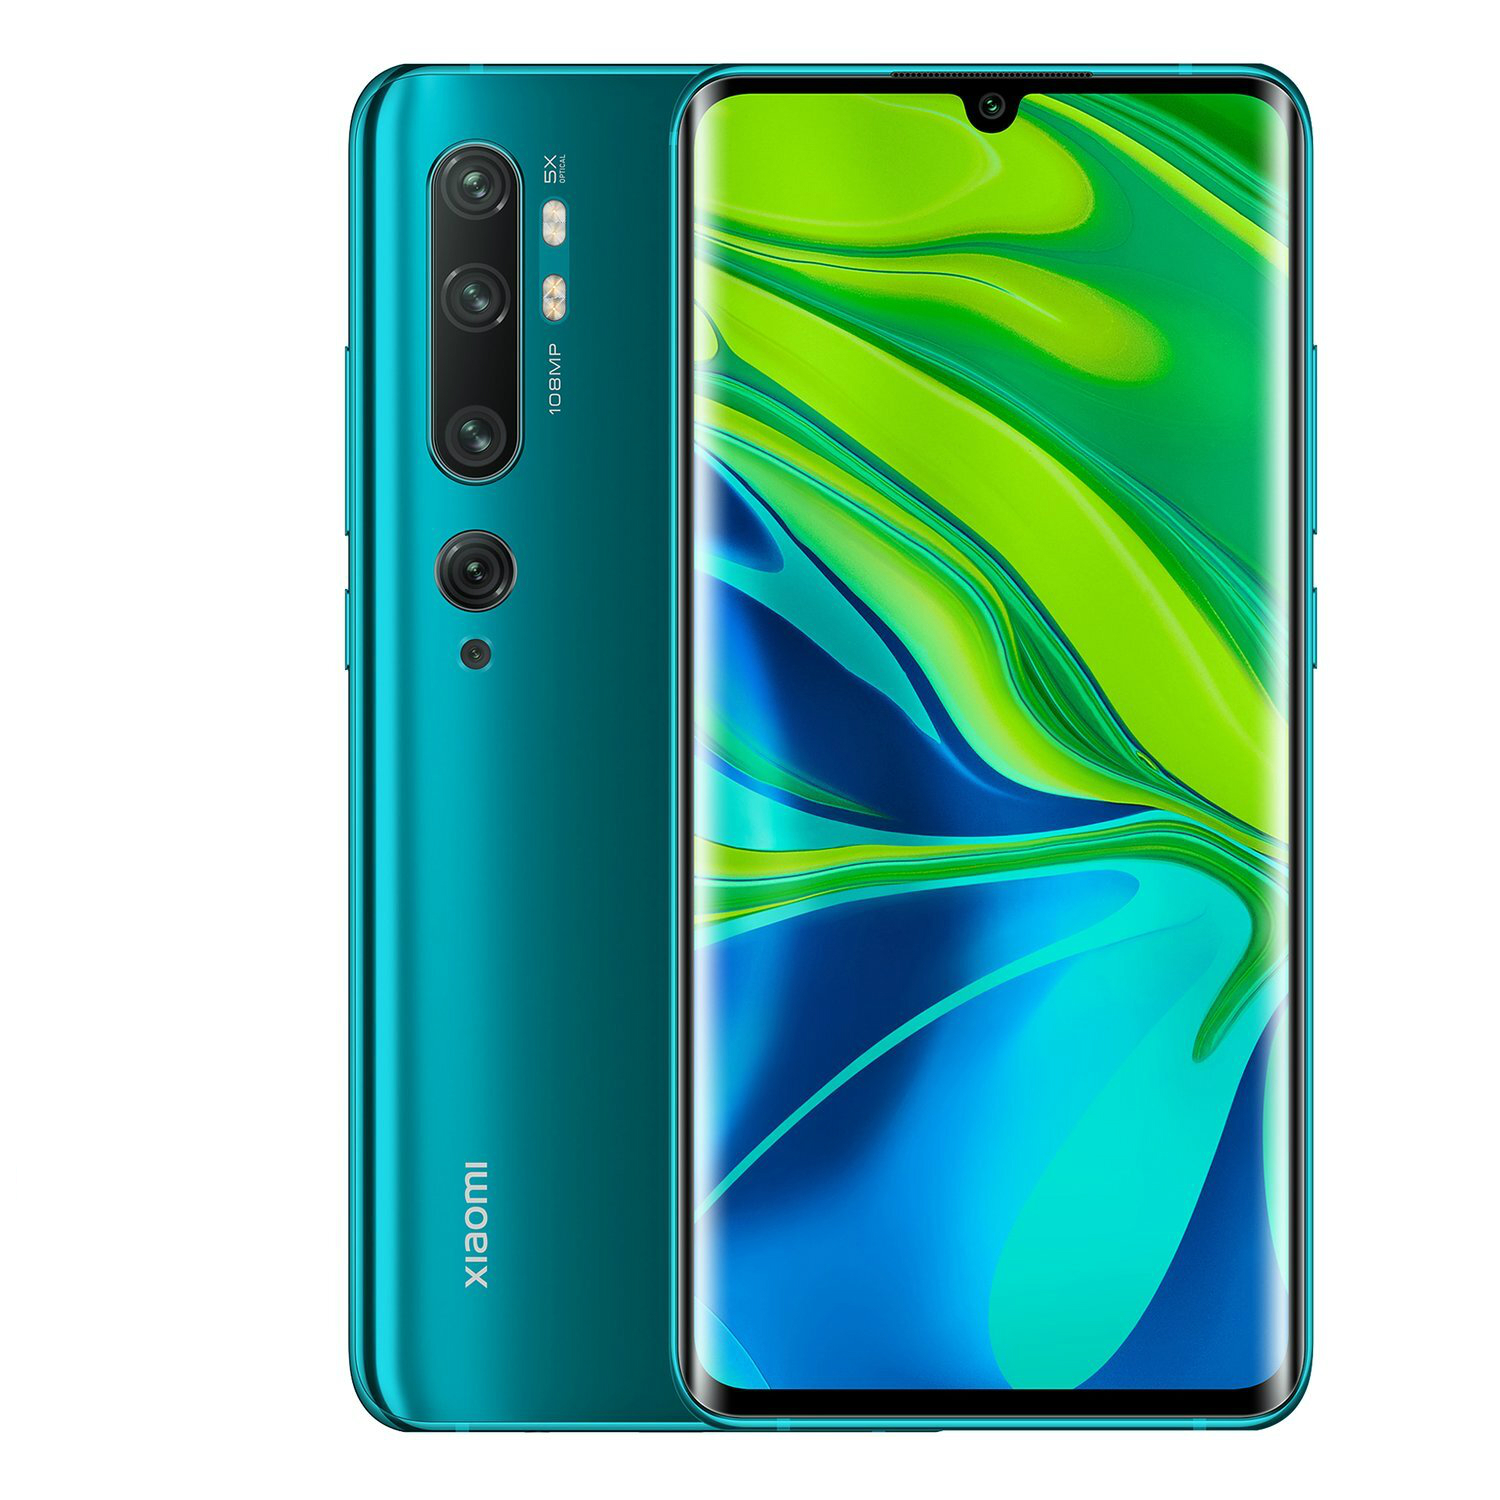 Image of Xiaomi Mi Note 10 6GB/128GB Dual Sim - Aurora Green